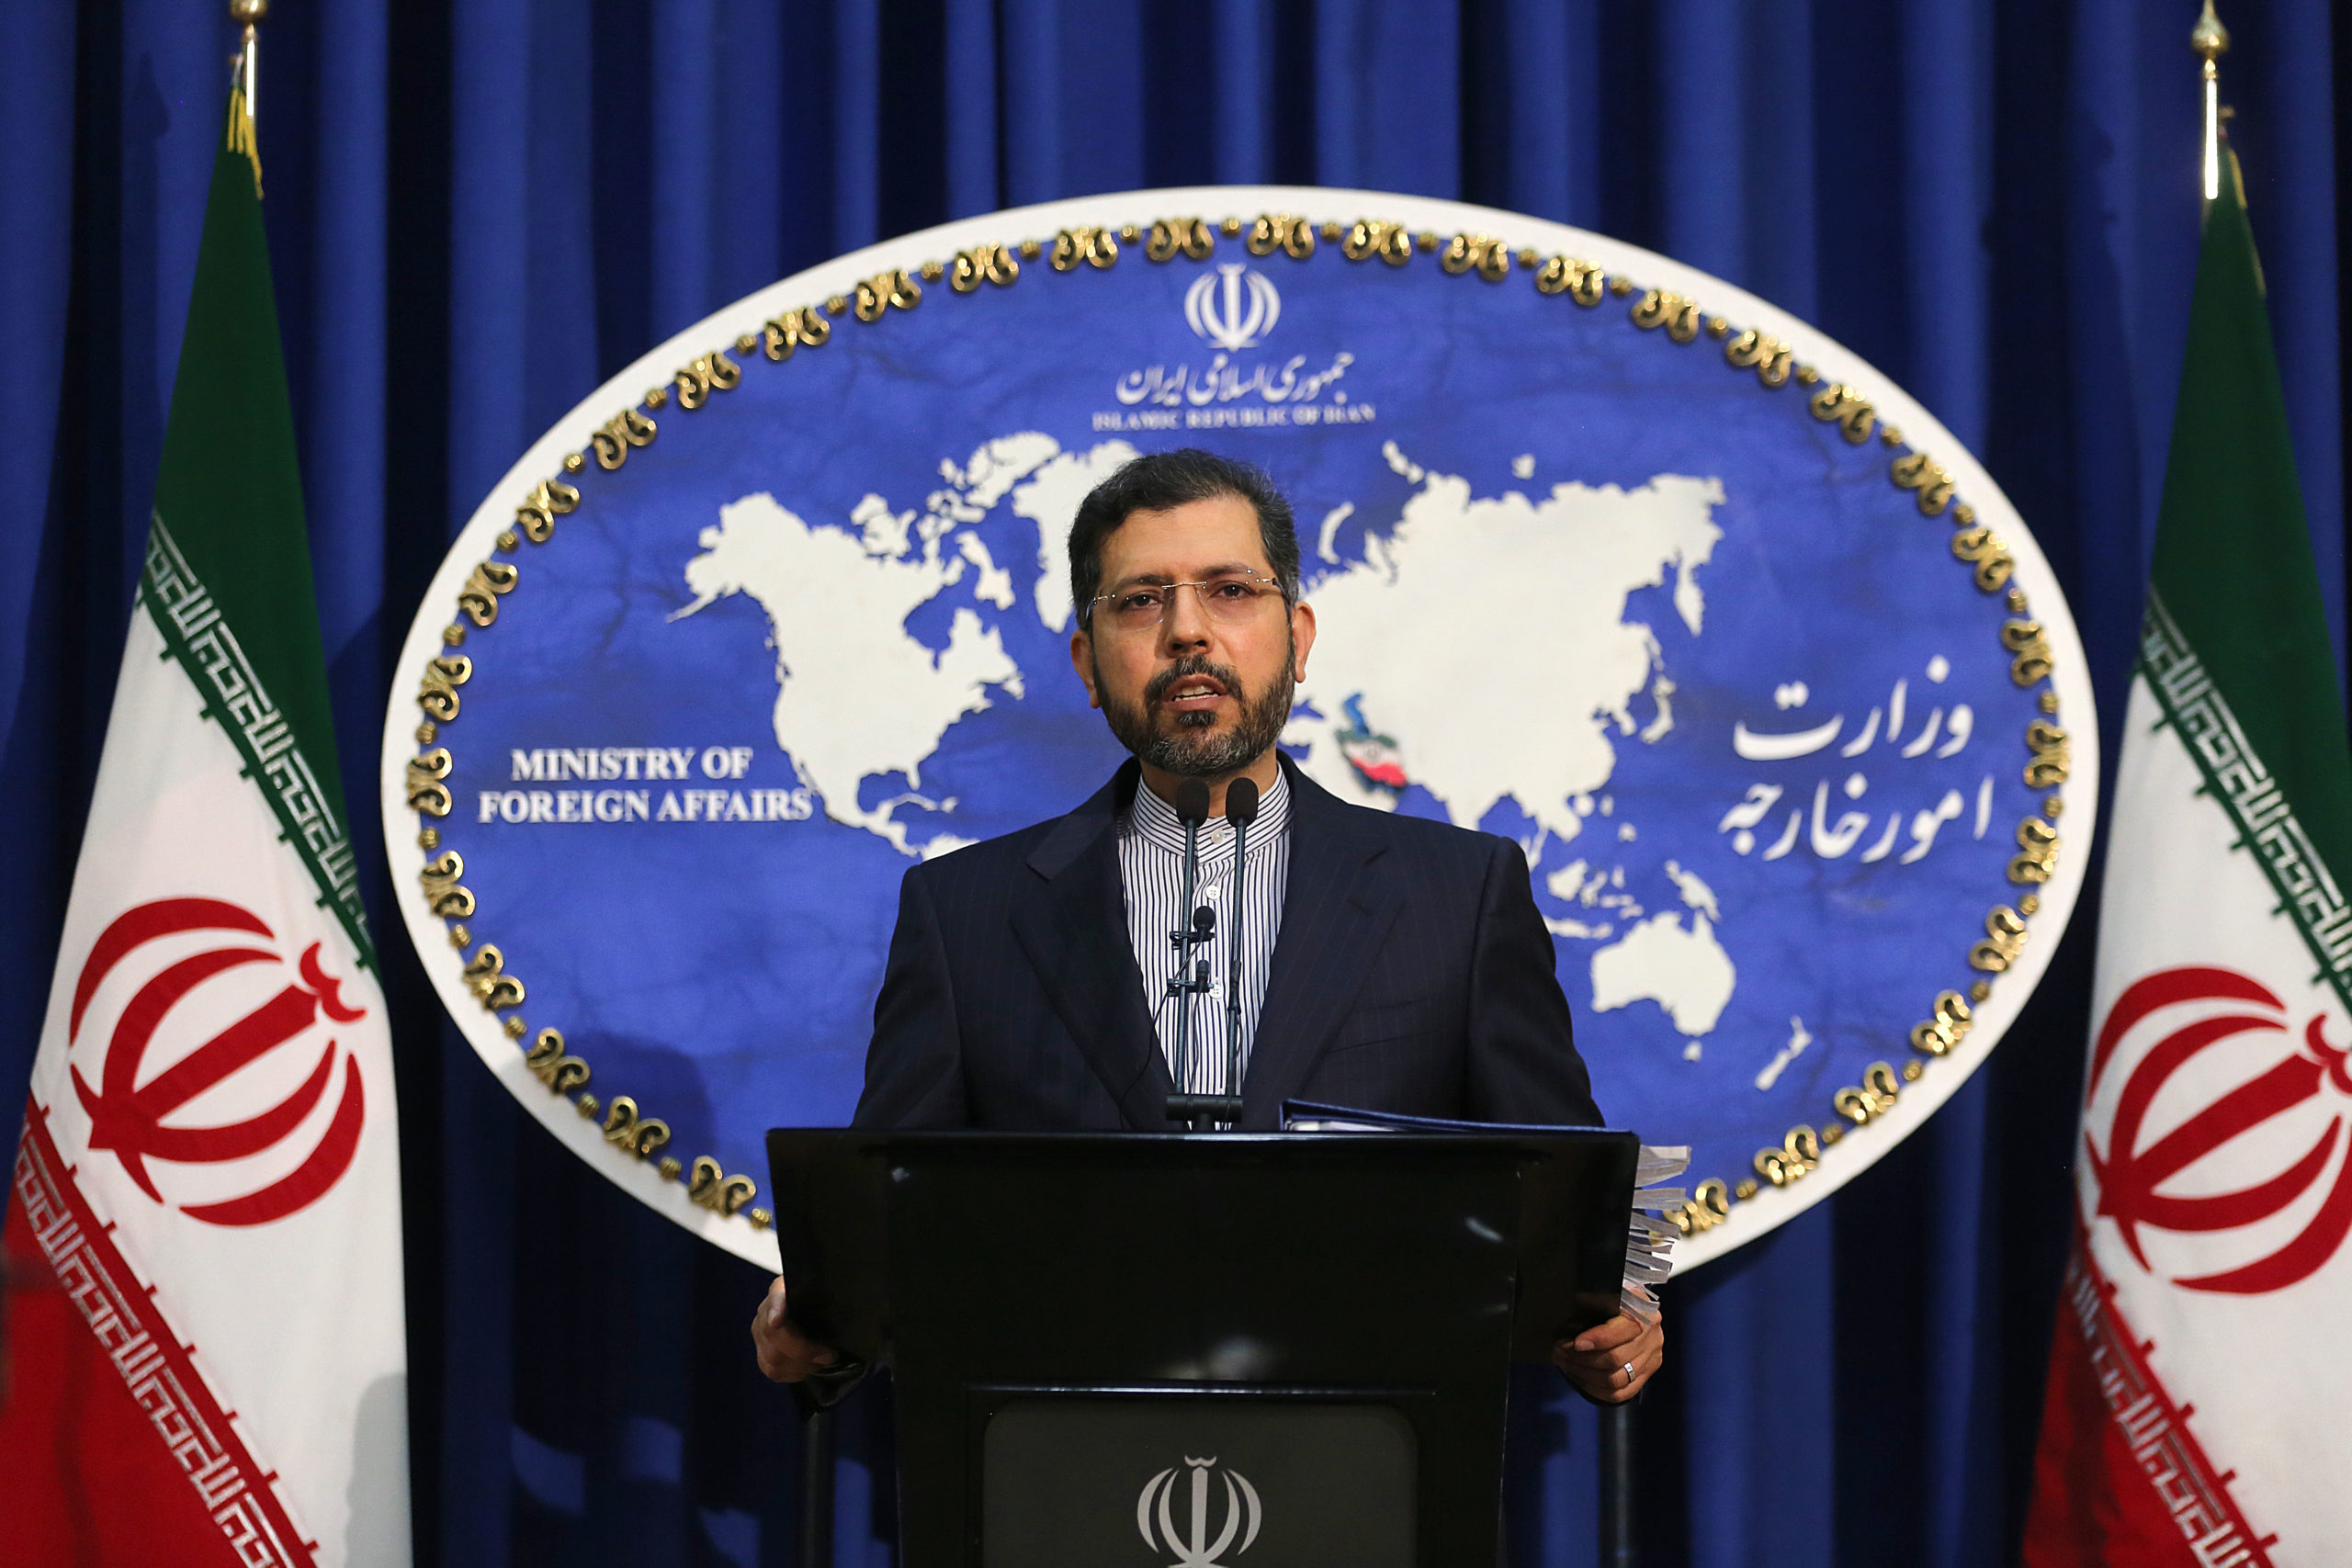 Iranian foreign ministry spokesperson Saied Khatibzadeh addresses the nuclear deal during a press conference in Tehran, Iran on Feb. 22. (Atta Kenare/AFP via Getty Images)